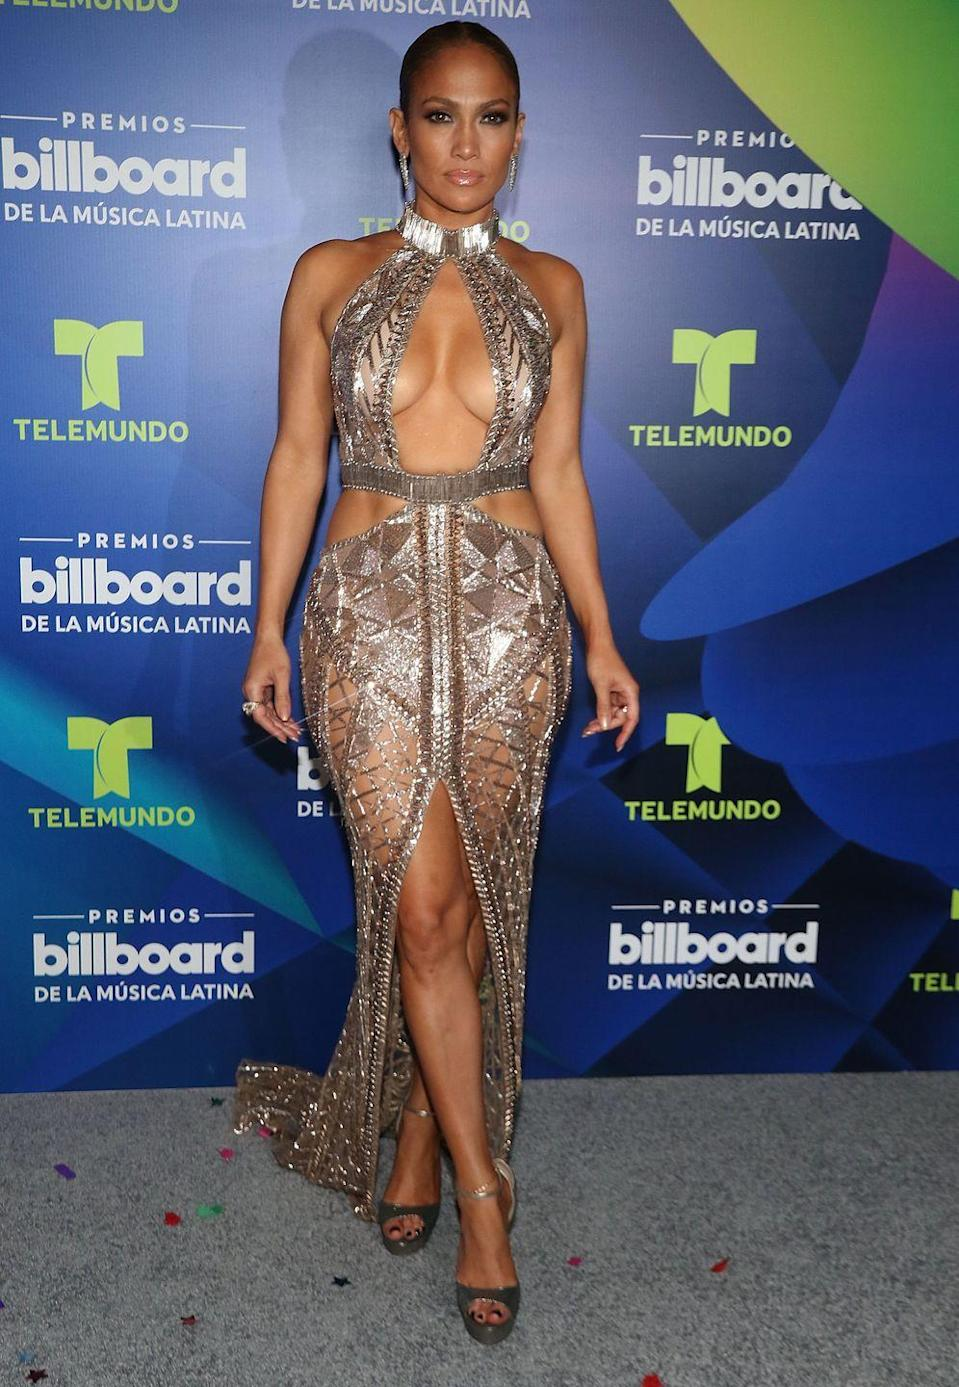 <p>J.Lo shows off her abs (a recurring theme in this gallery) at the Billboard Latin Music Awards in Coral Gables, Florida. At the event, she picked up awards for Social Artist of the Year and Female Hot Latin Songs Artist of the Year. Here, she wears a plunging bejeweled dress, silver heels, and a slicked-back ponytail.</p>